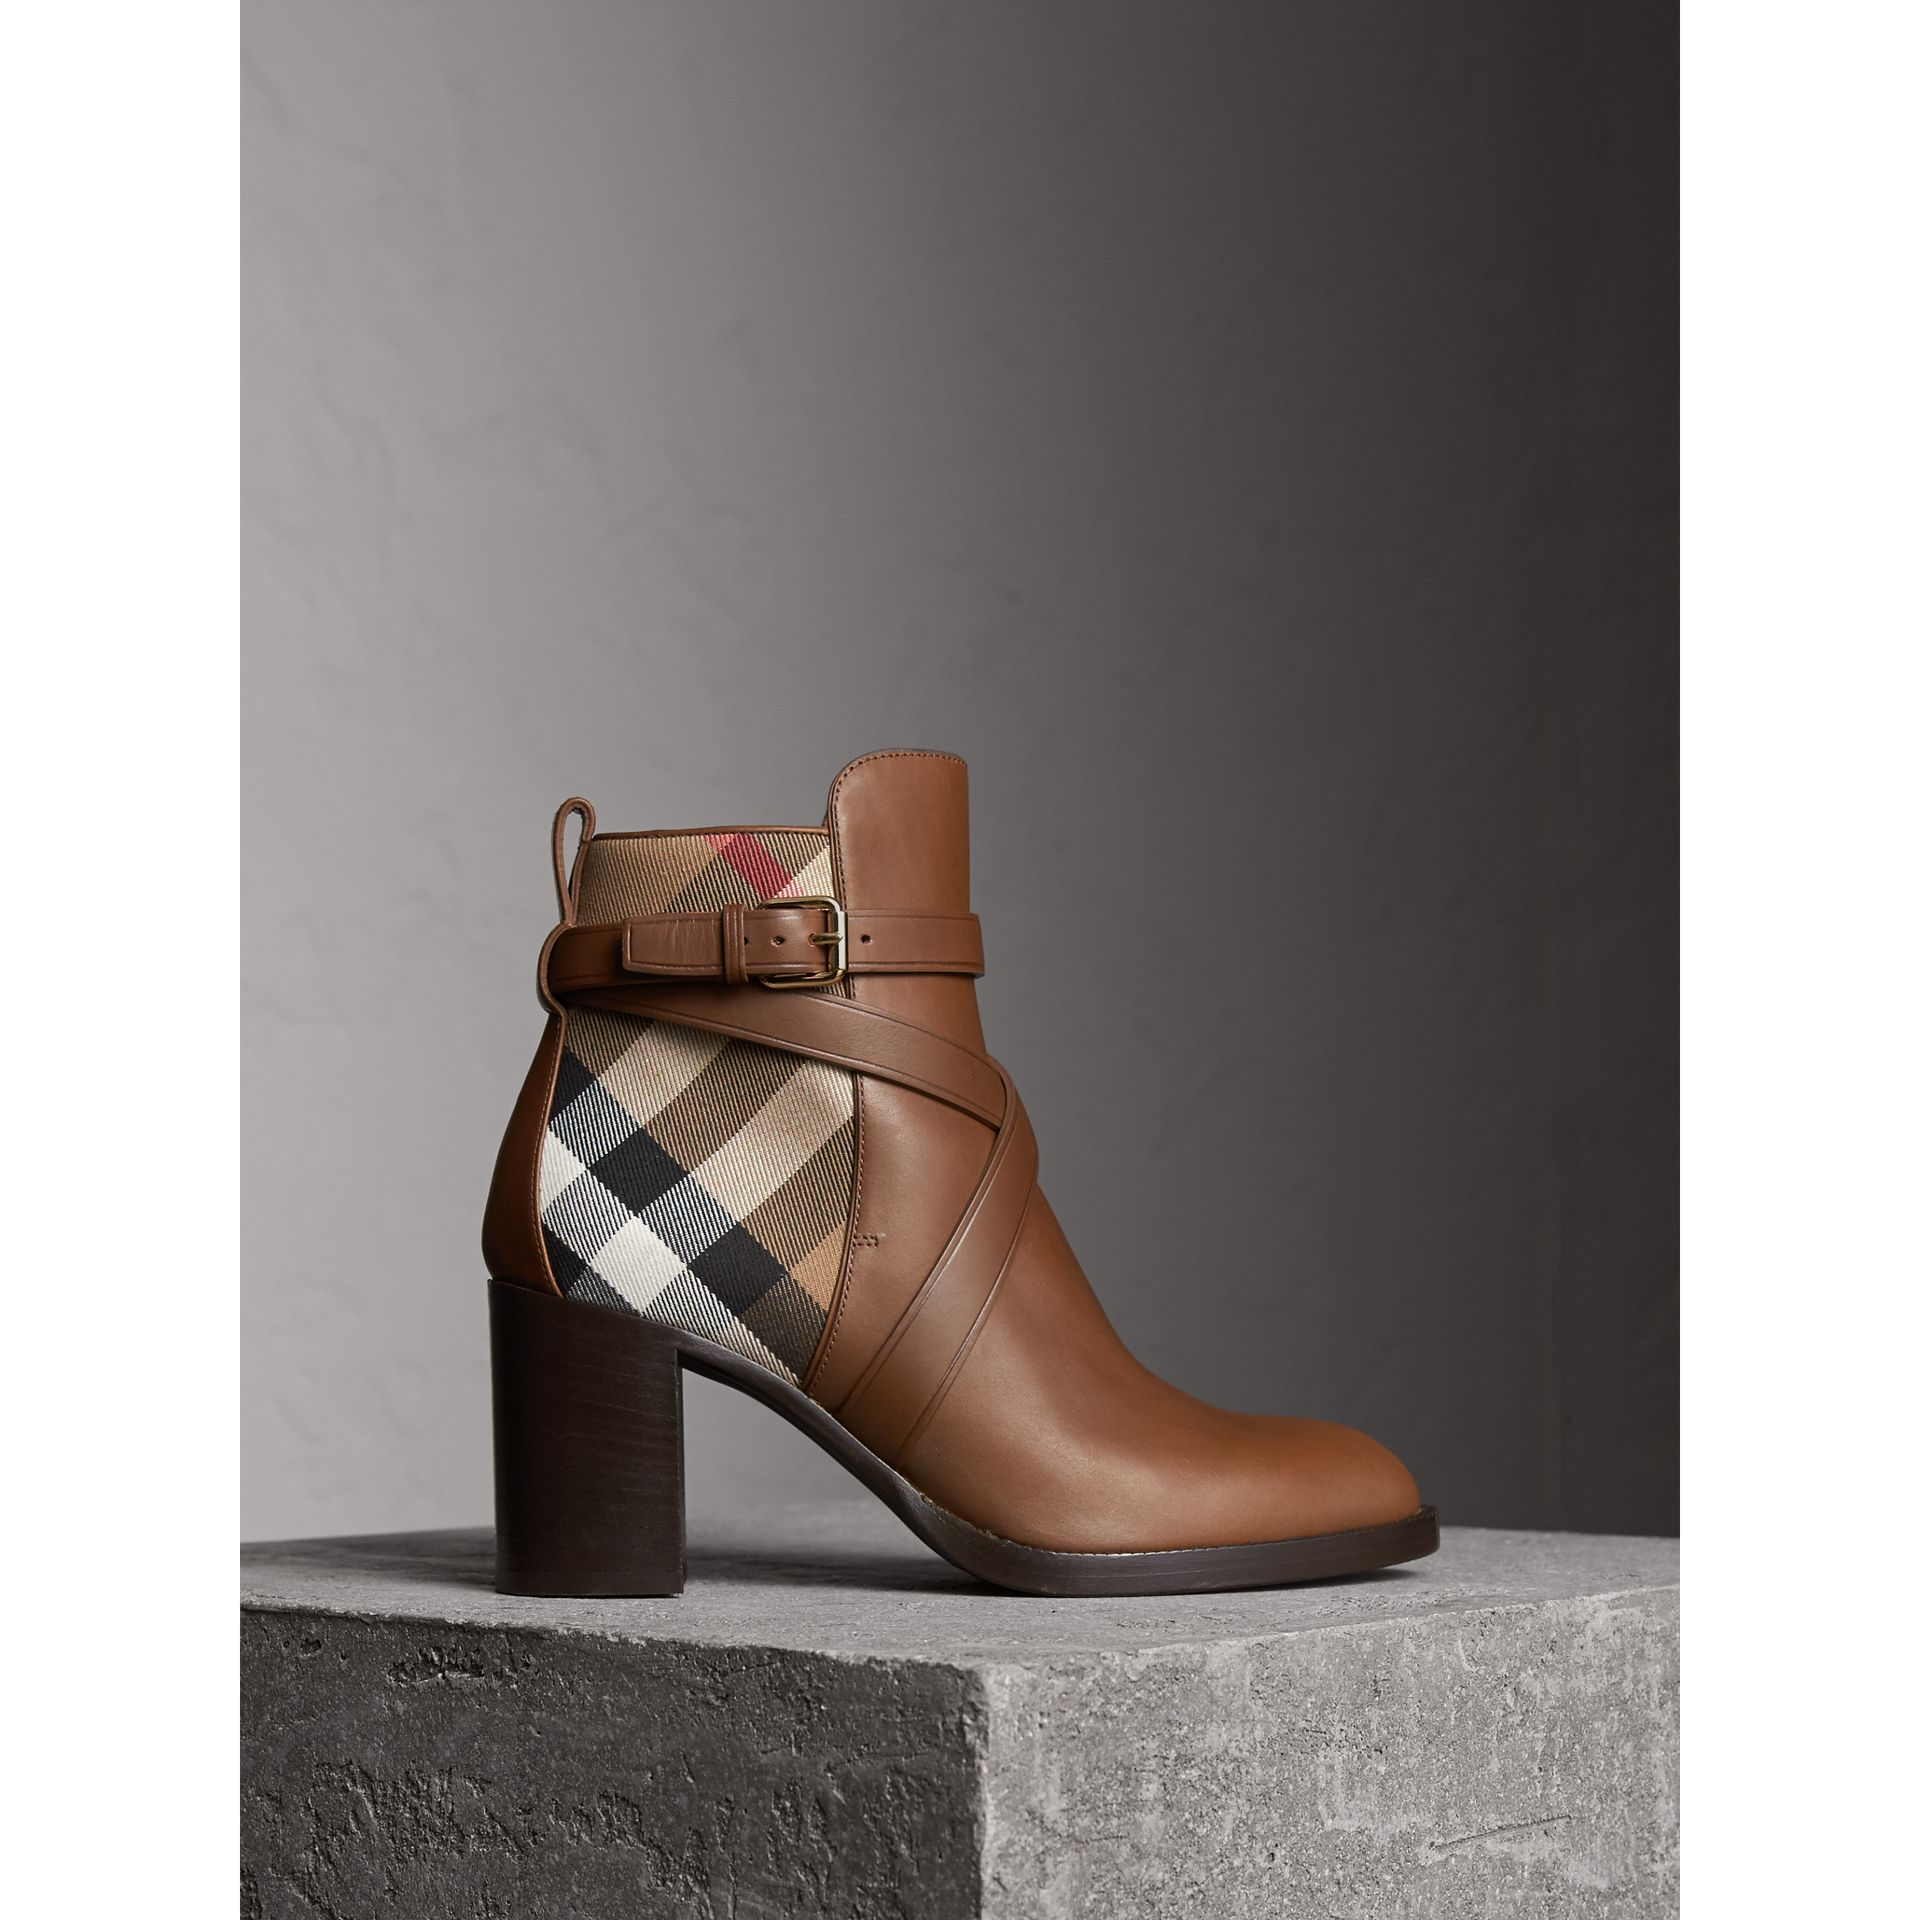 Bottines en cuir et coton House check (Camel Vif) - Femme | Burberry - photo de la galerie 0